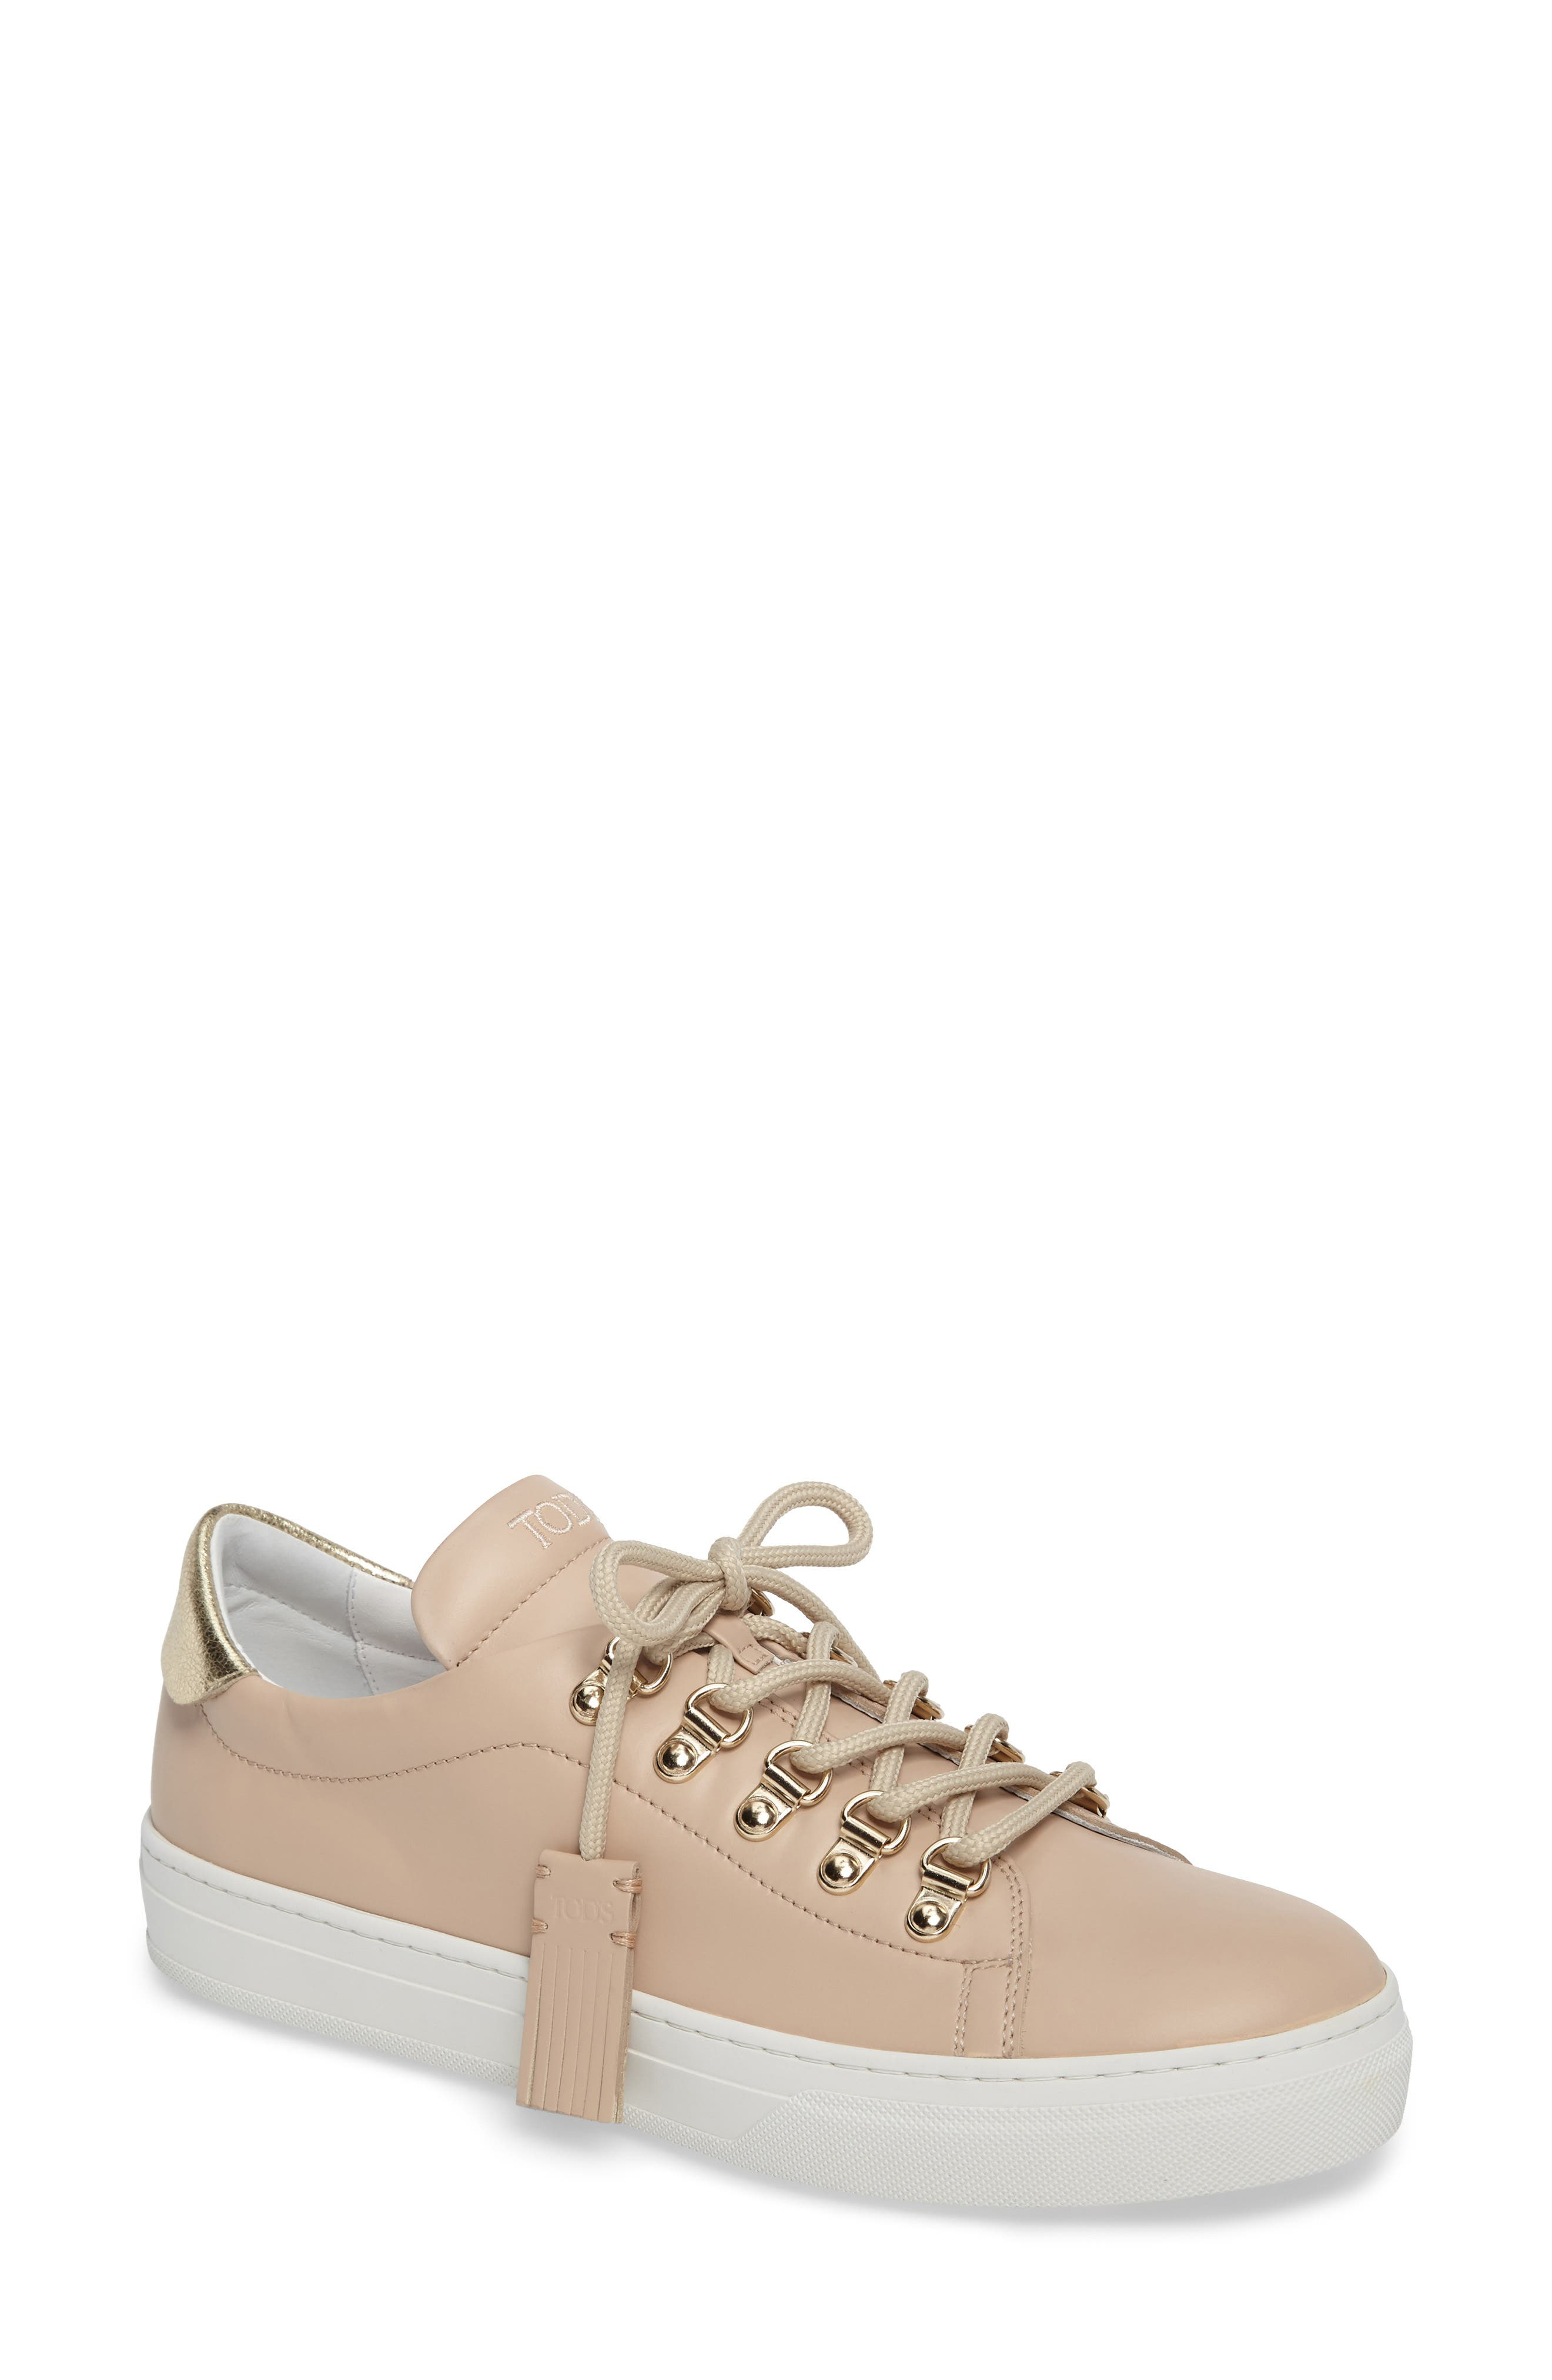 TODS Hiker Low Top Sneaker